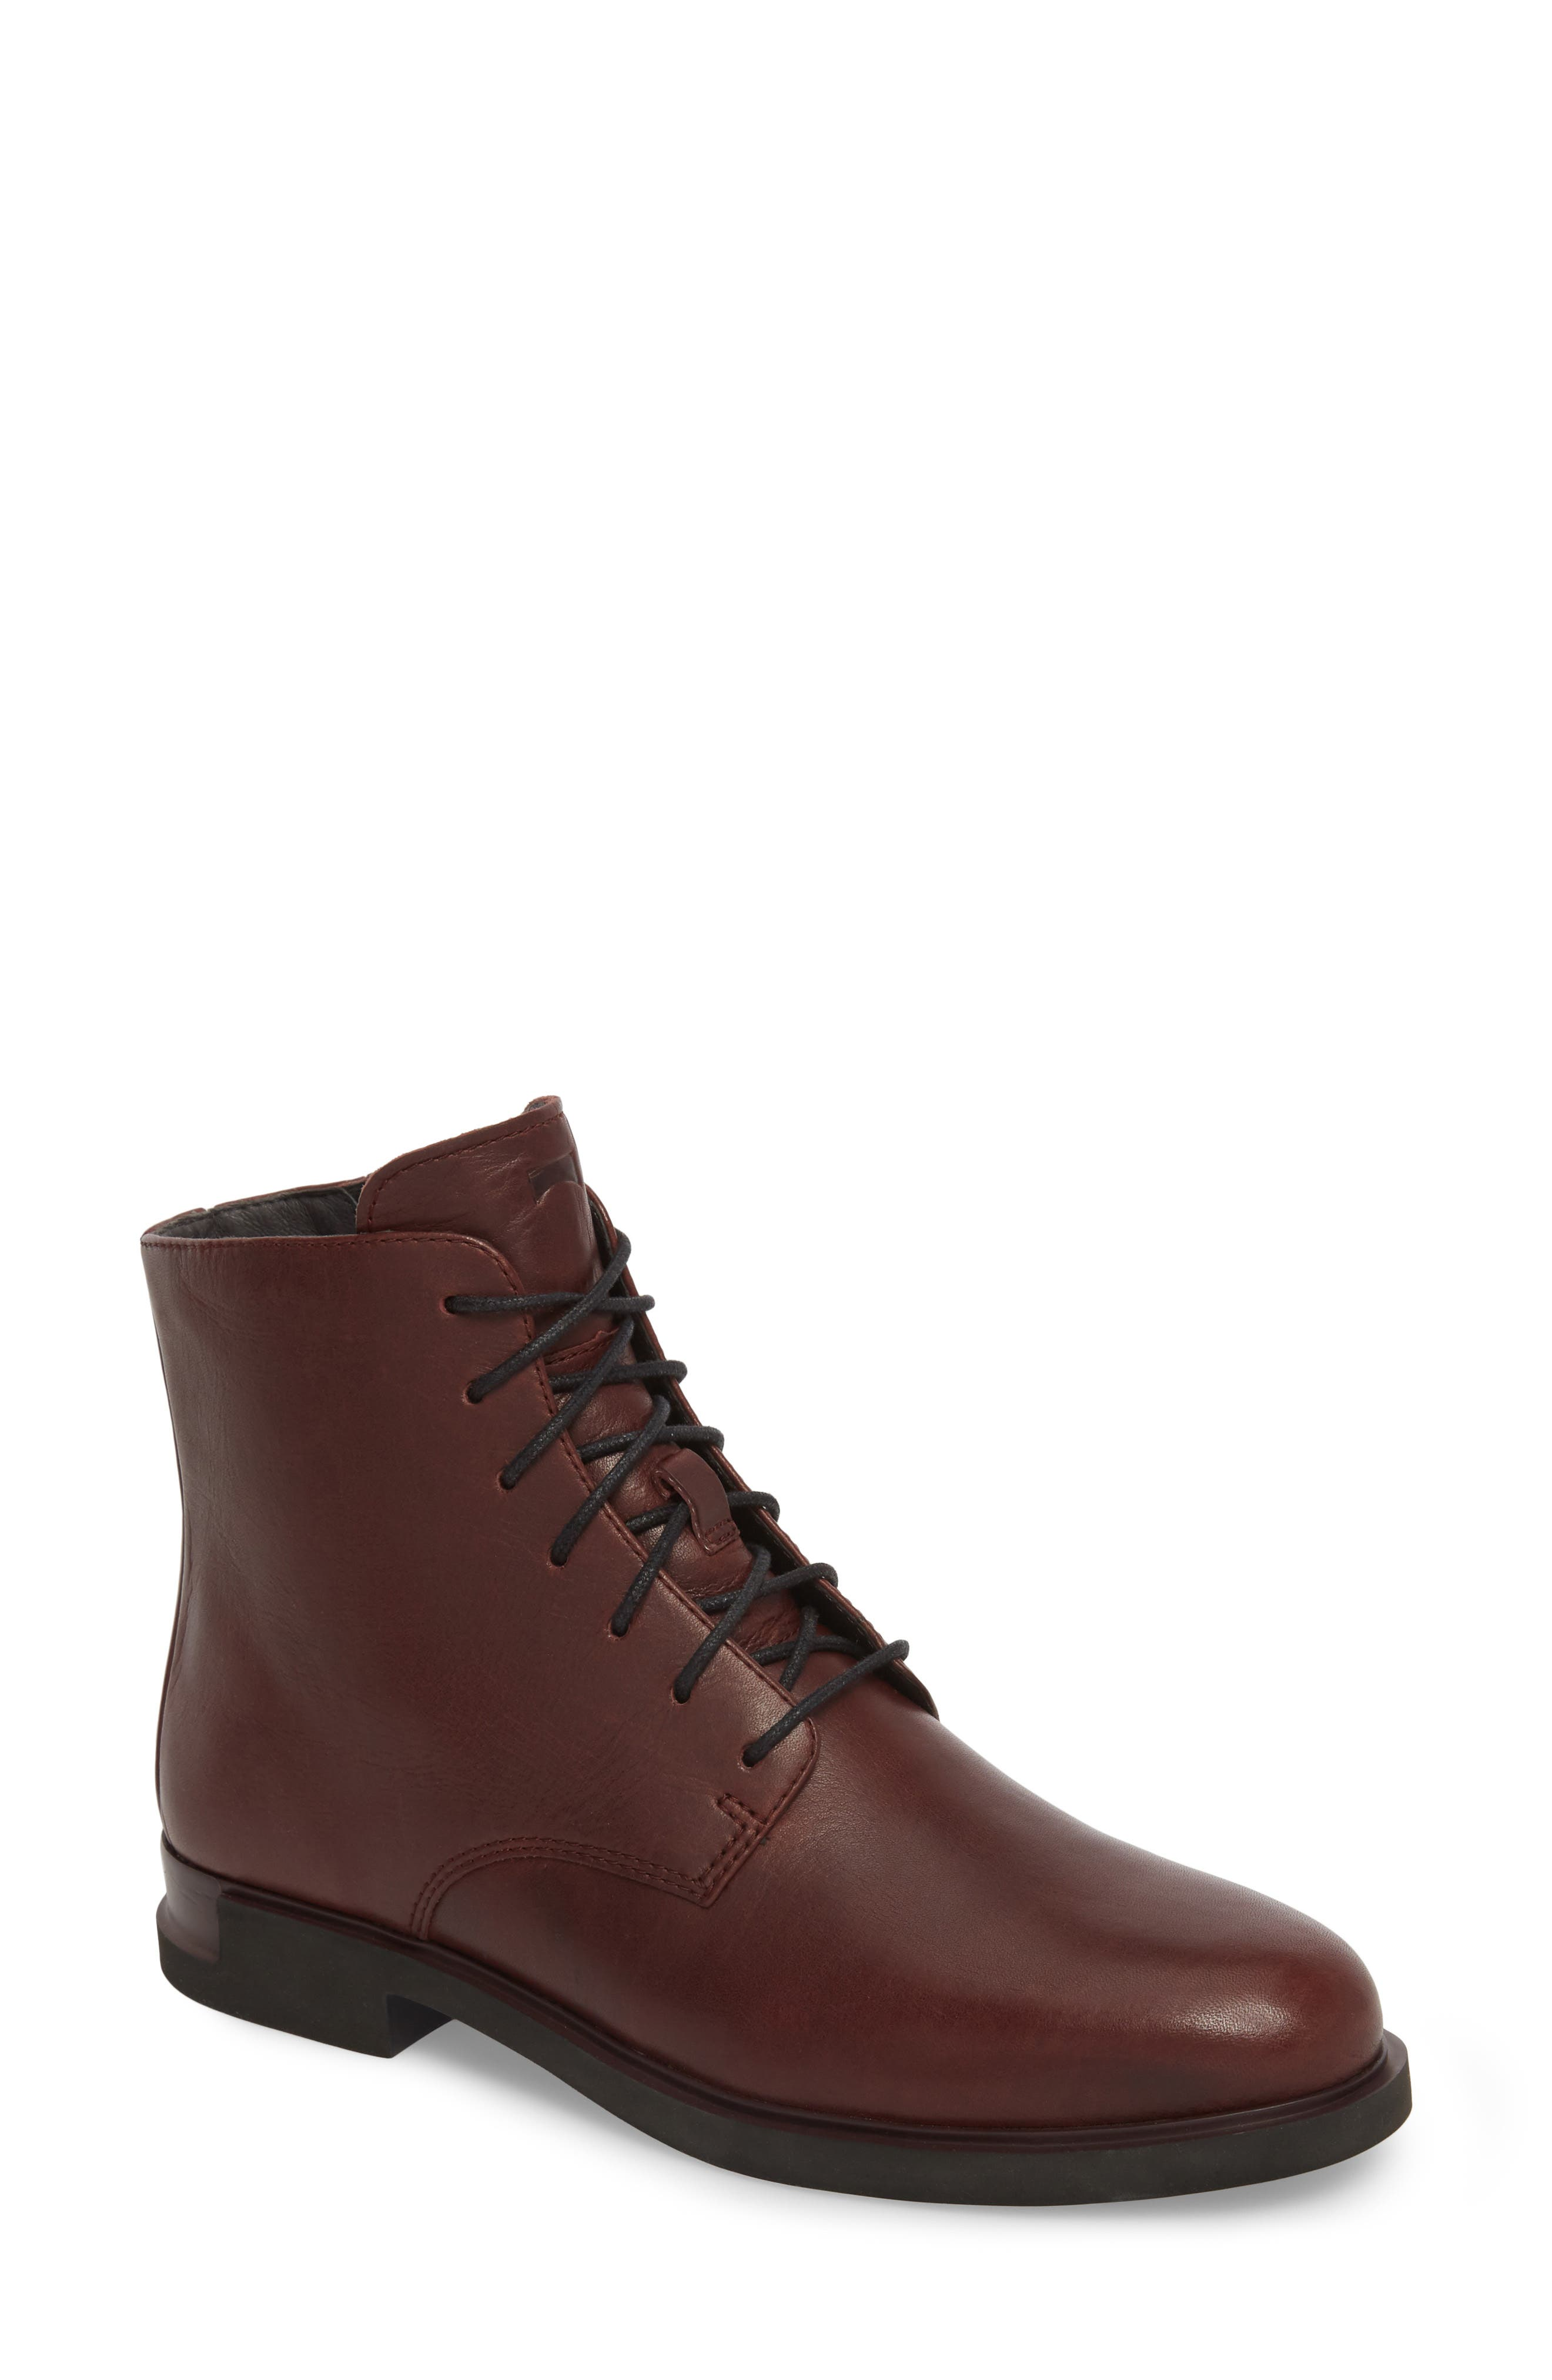 Helix Lace-Up Bootie,                         Main,                         color, Burgundy Leather